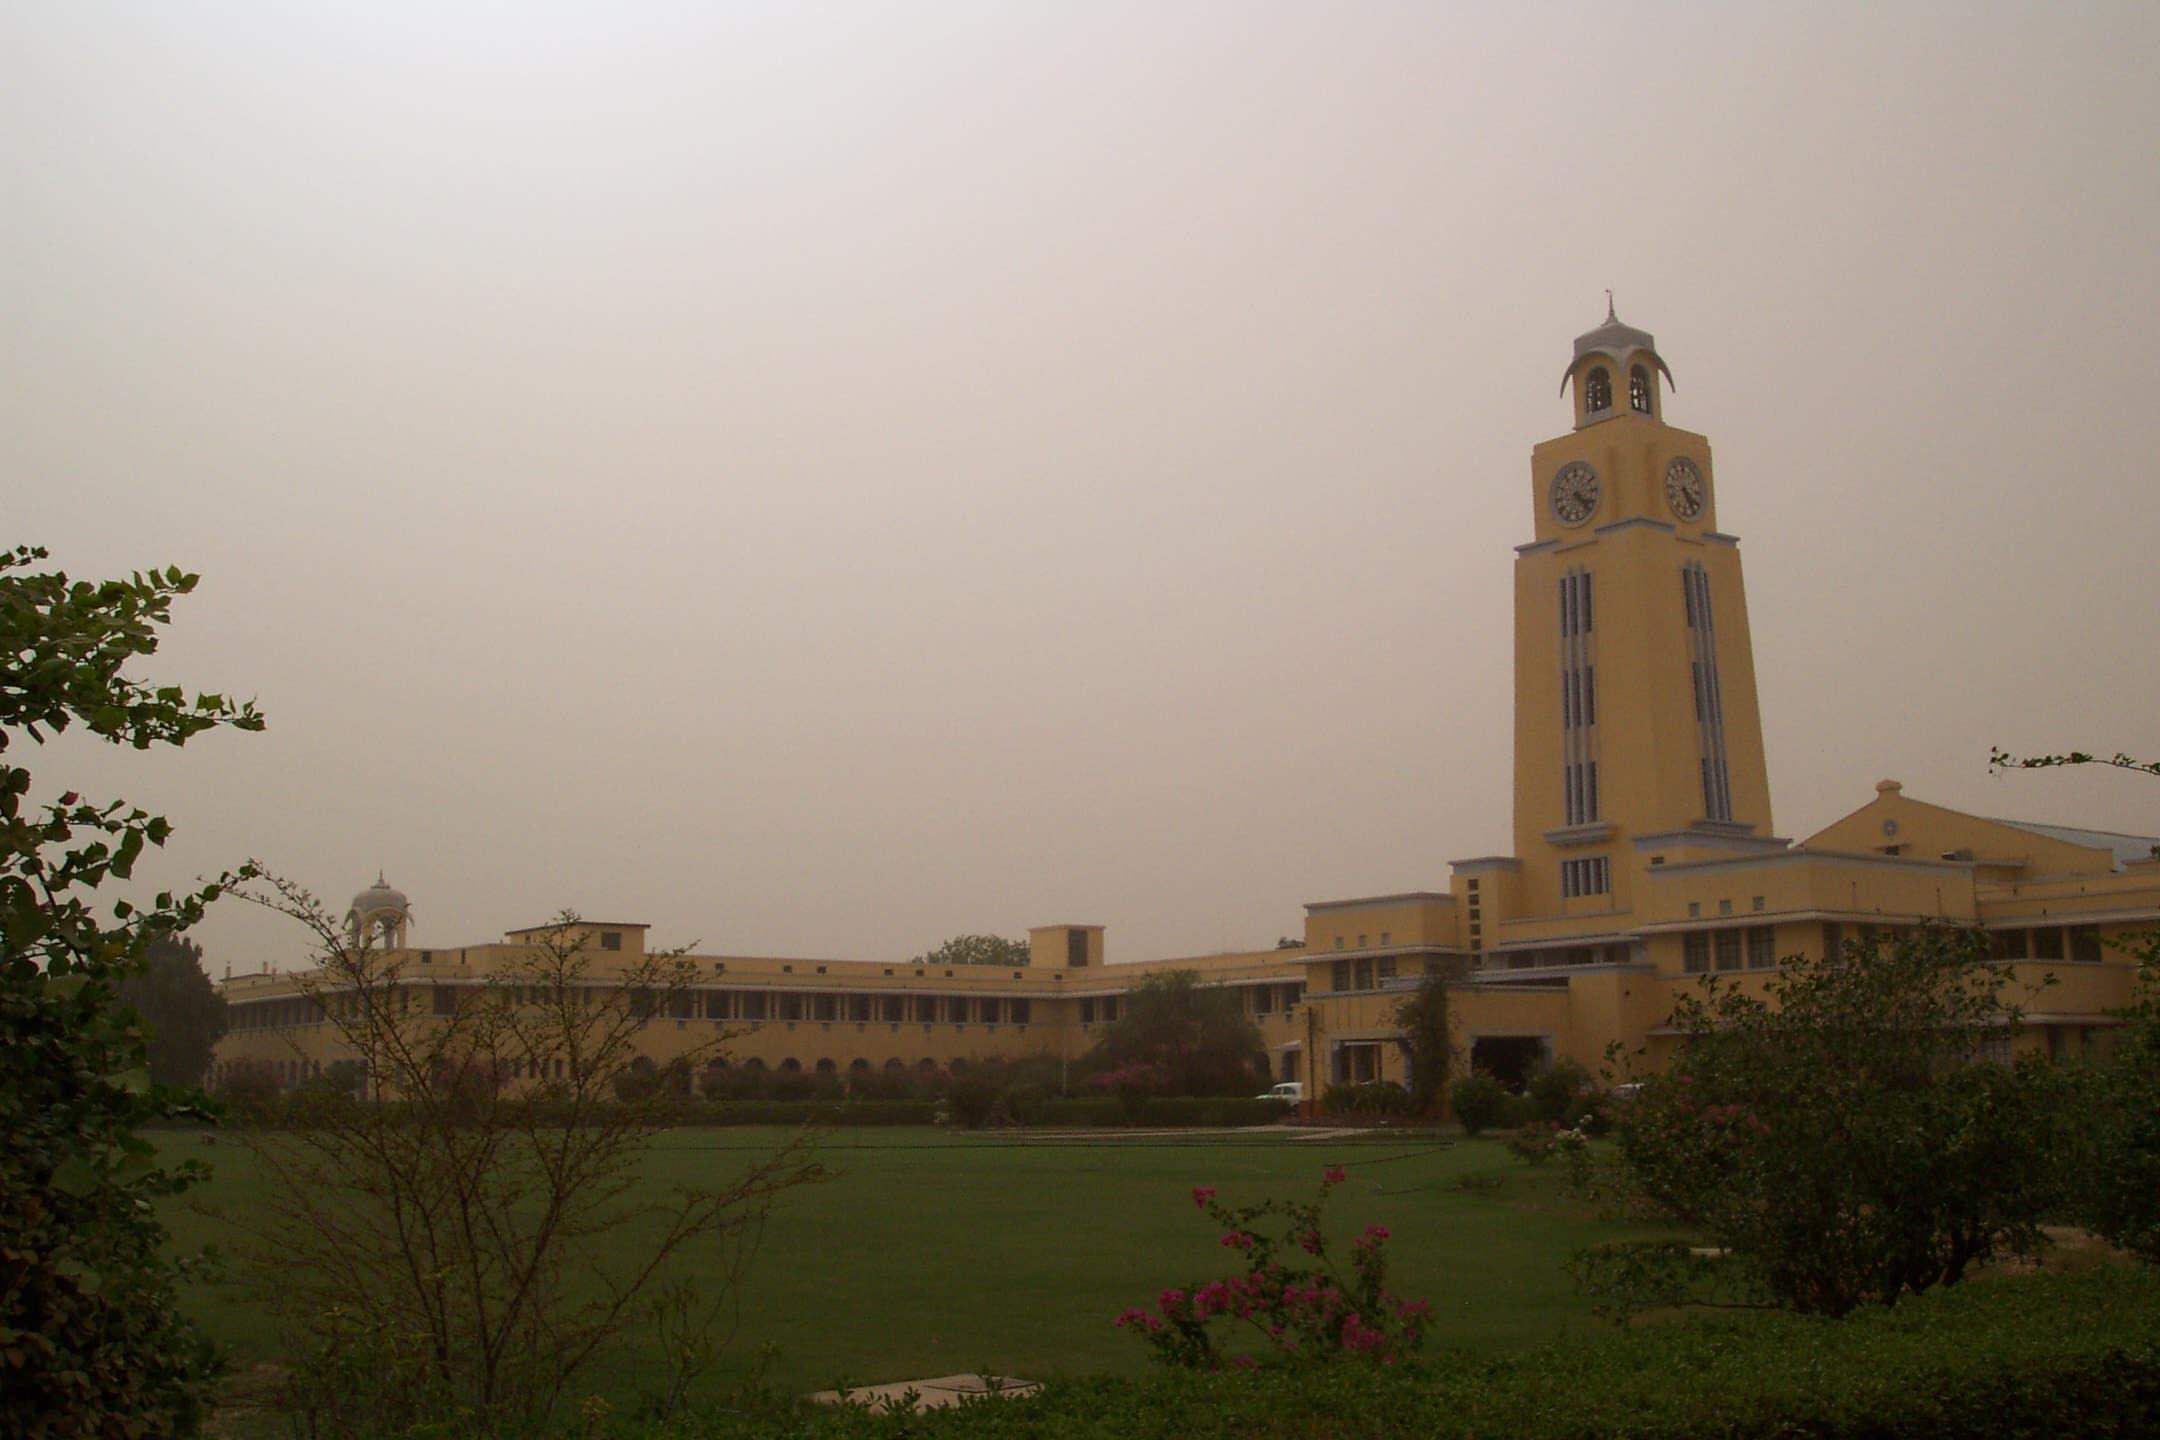 Engineering Colleges